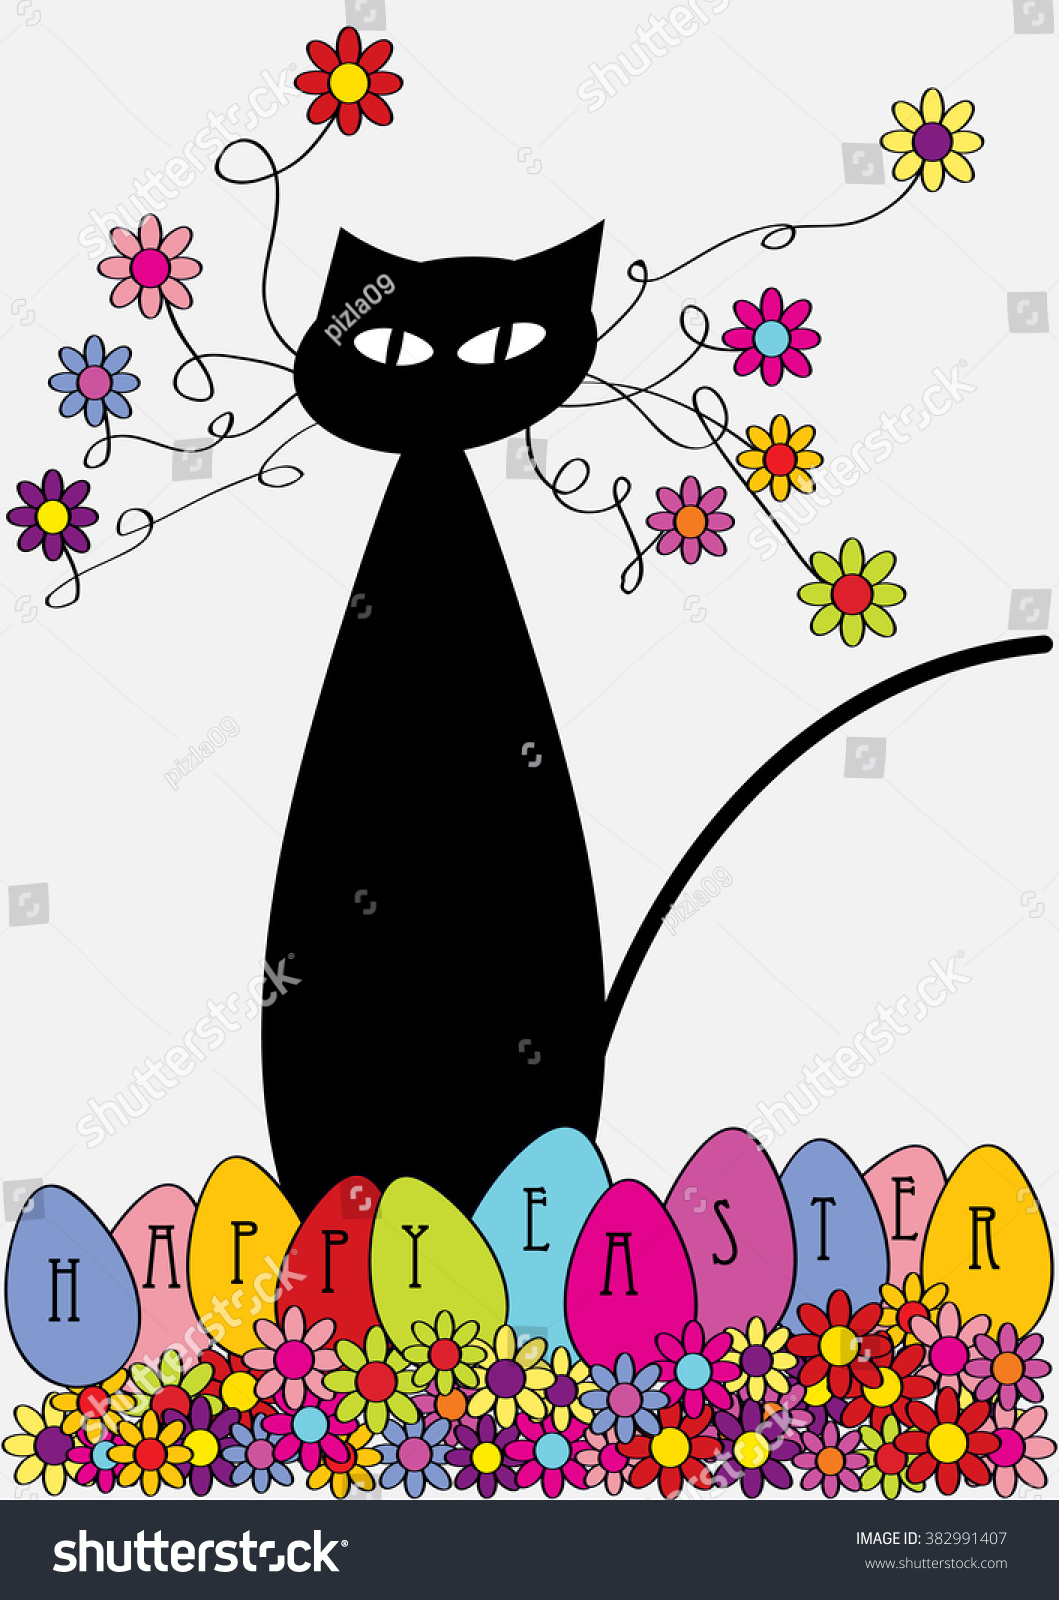 happy easter cartoon cat stock vector 382991407